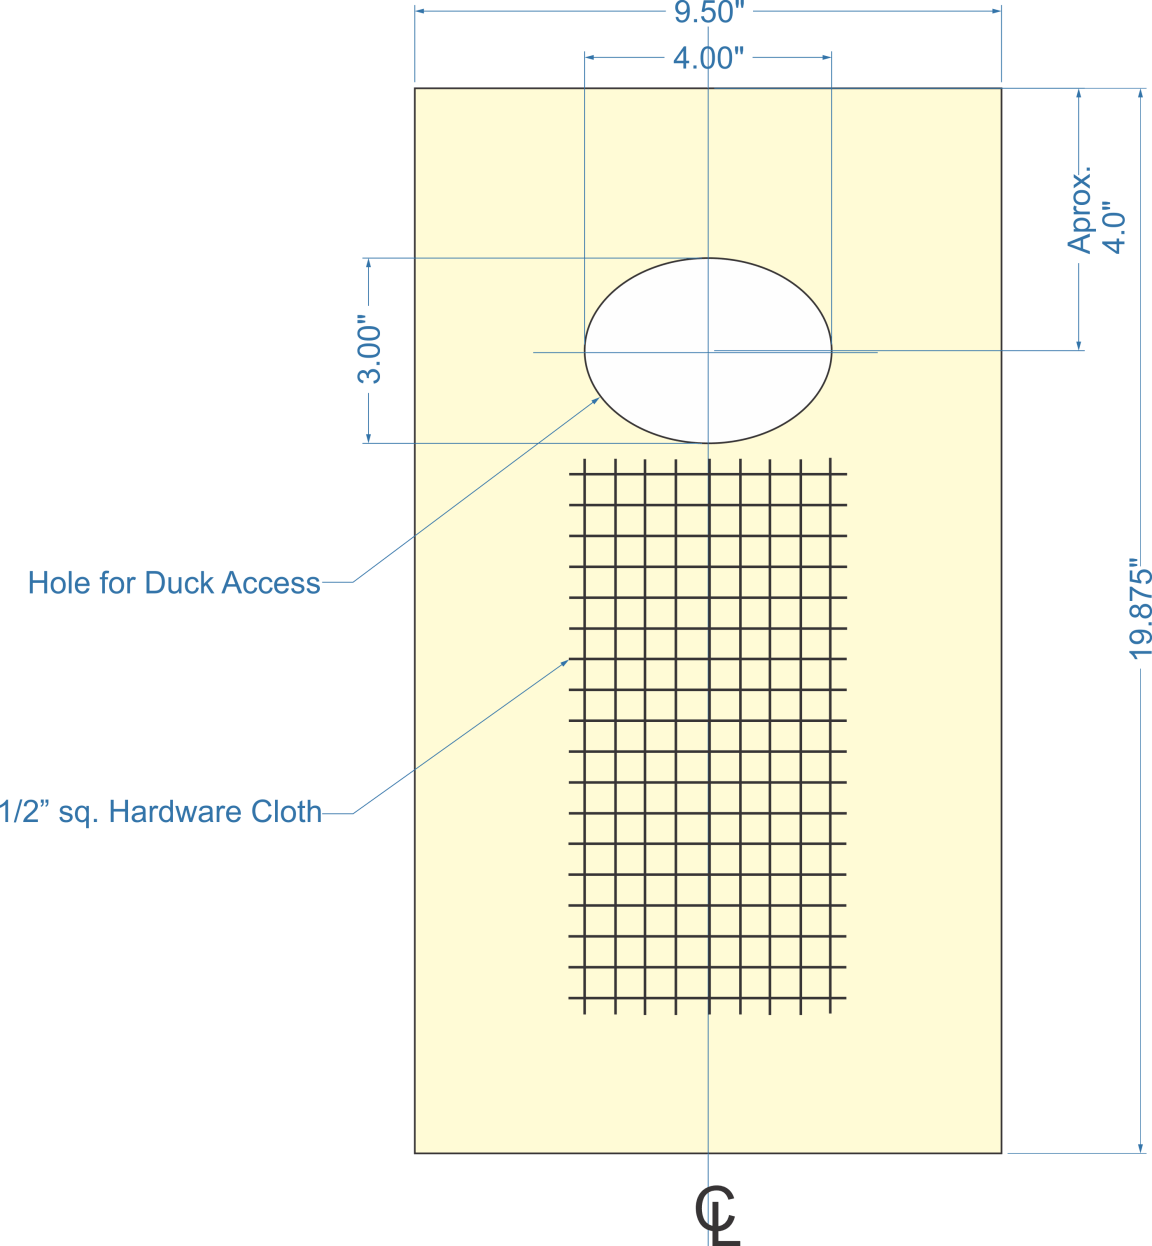 door dimensions, hole for duck access, hardware cloth